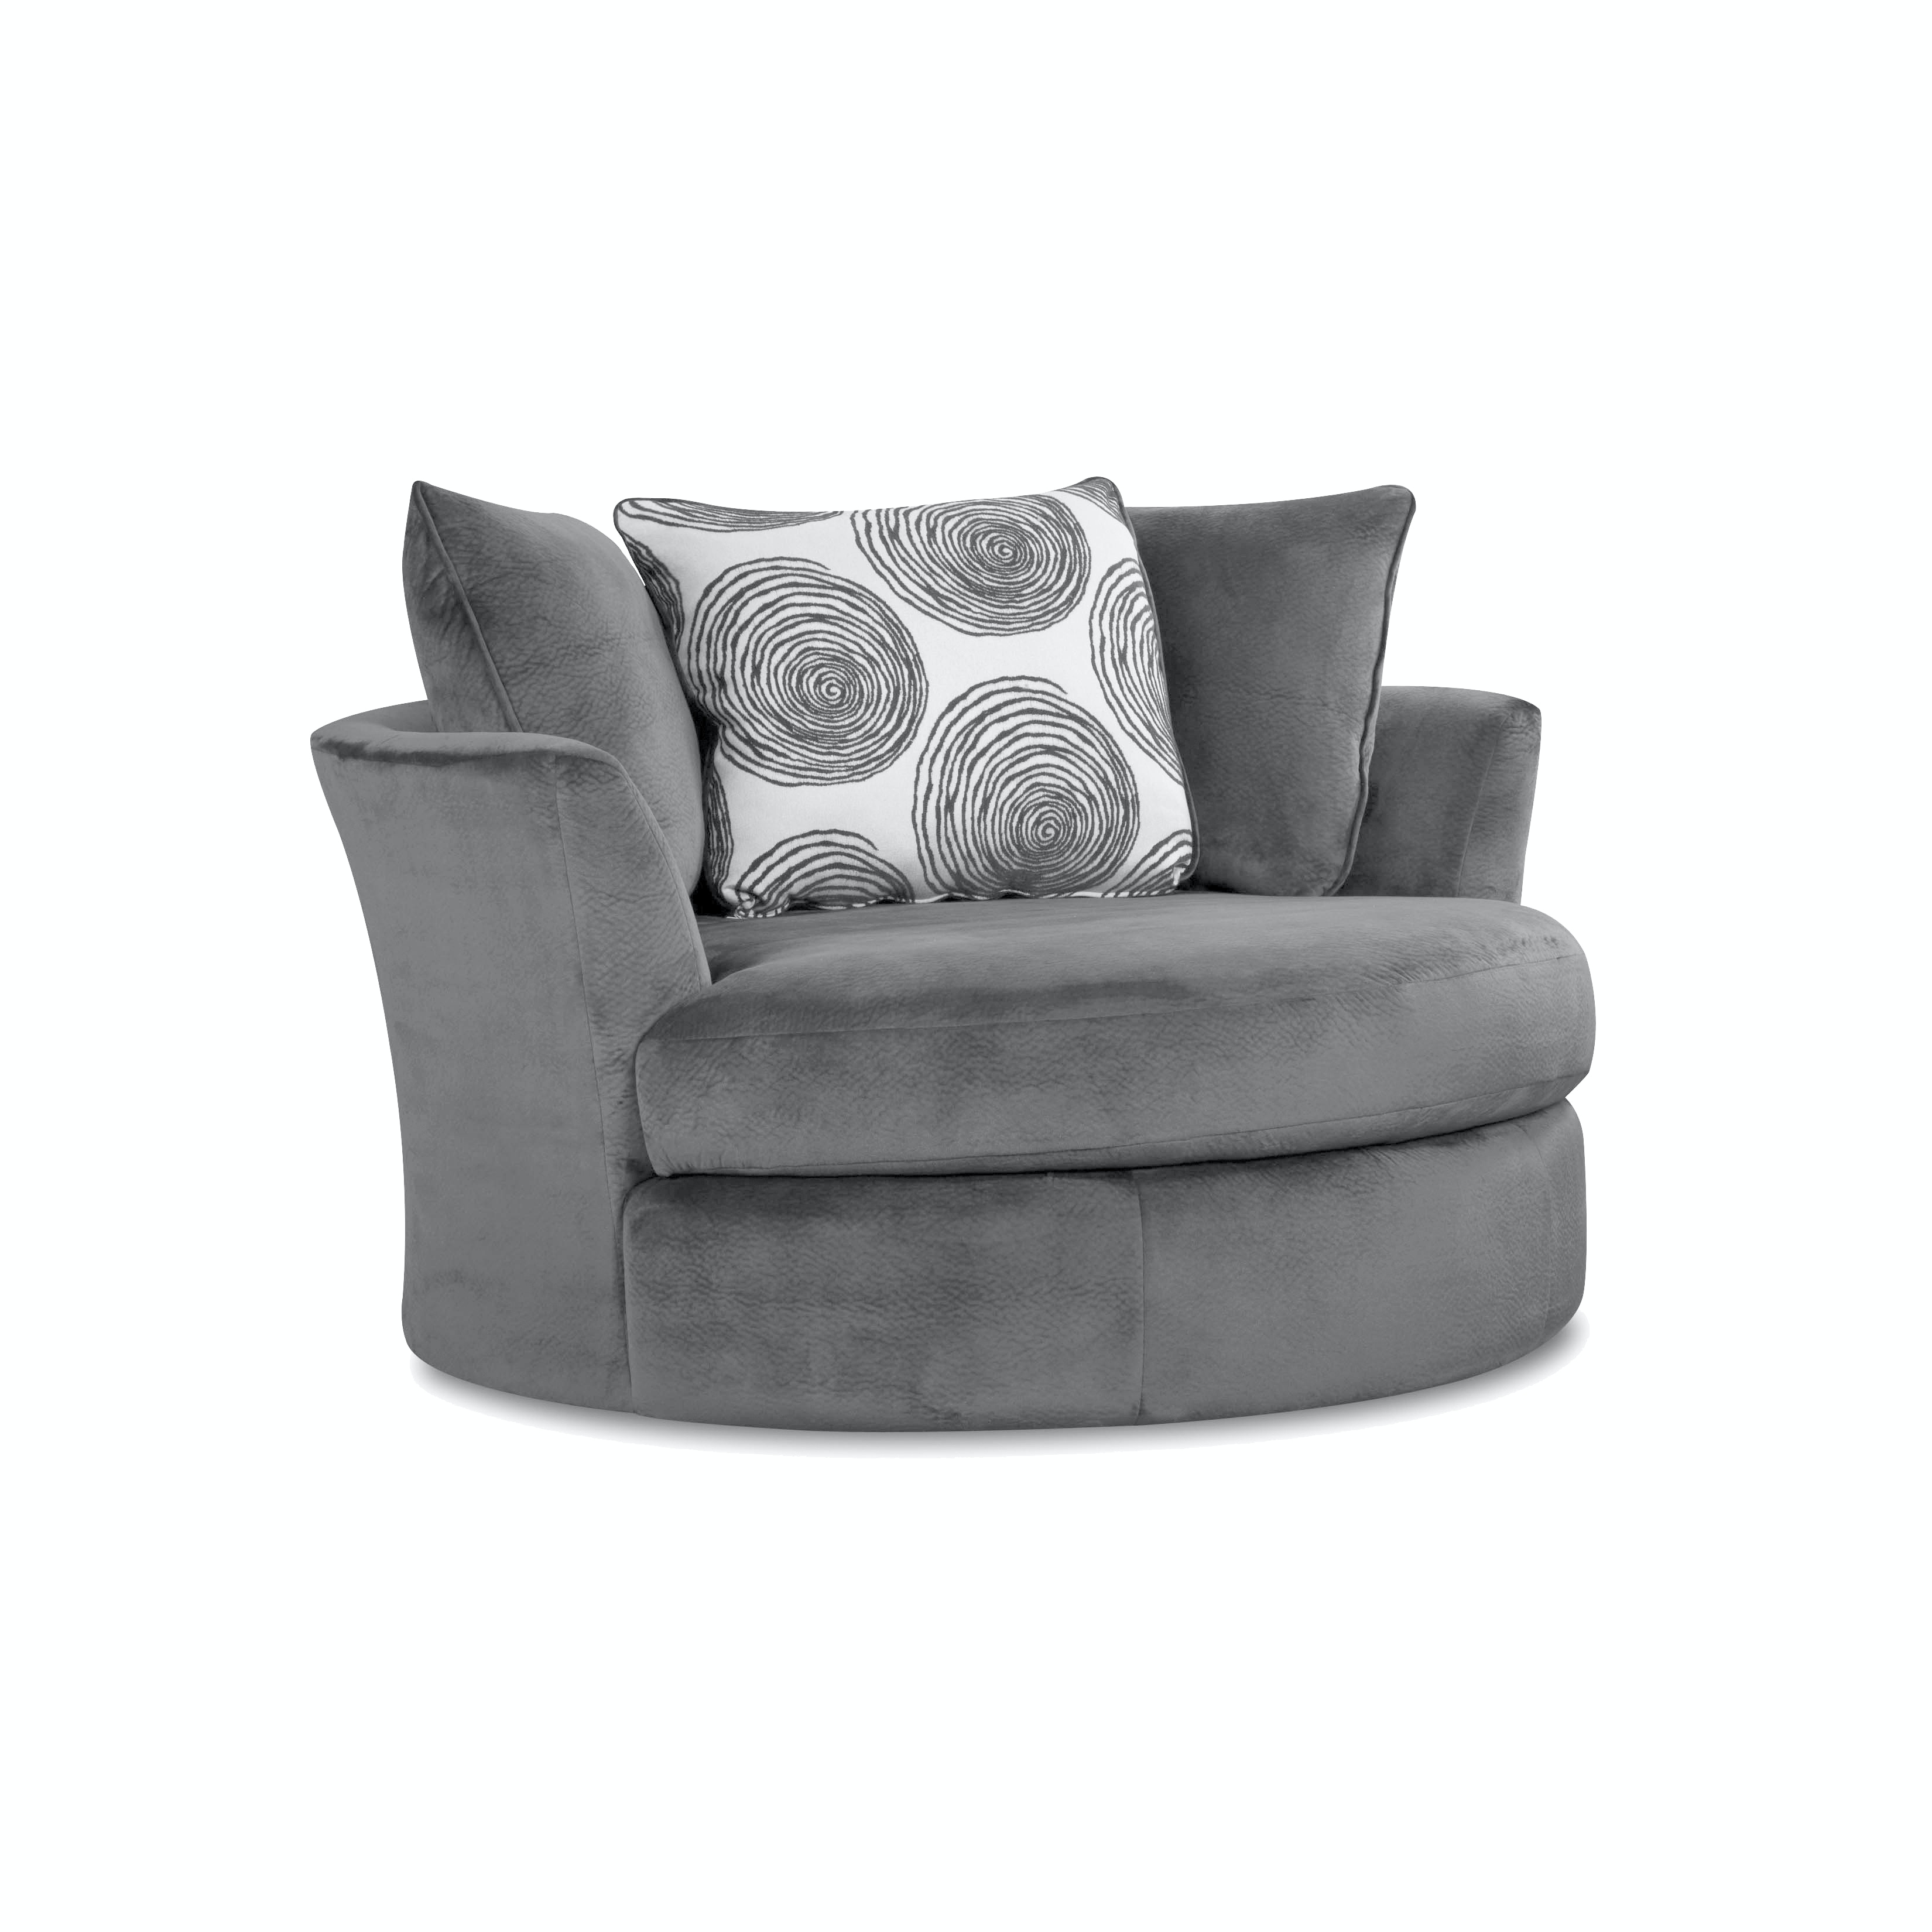 comfortable swivel chair cheap lift chairs clearance center albany living room oversized 529056 at talsma furniture